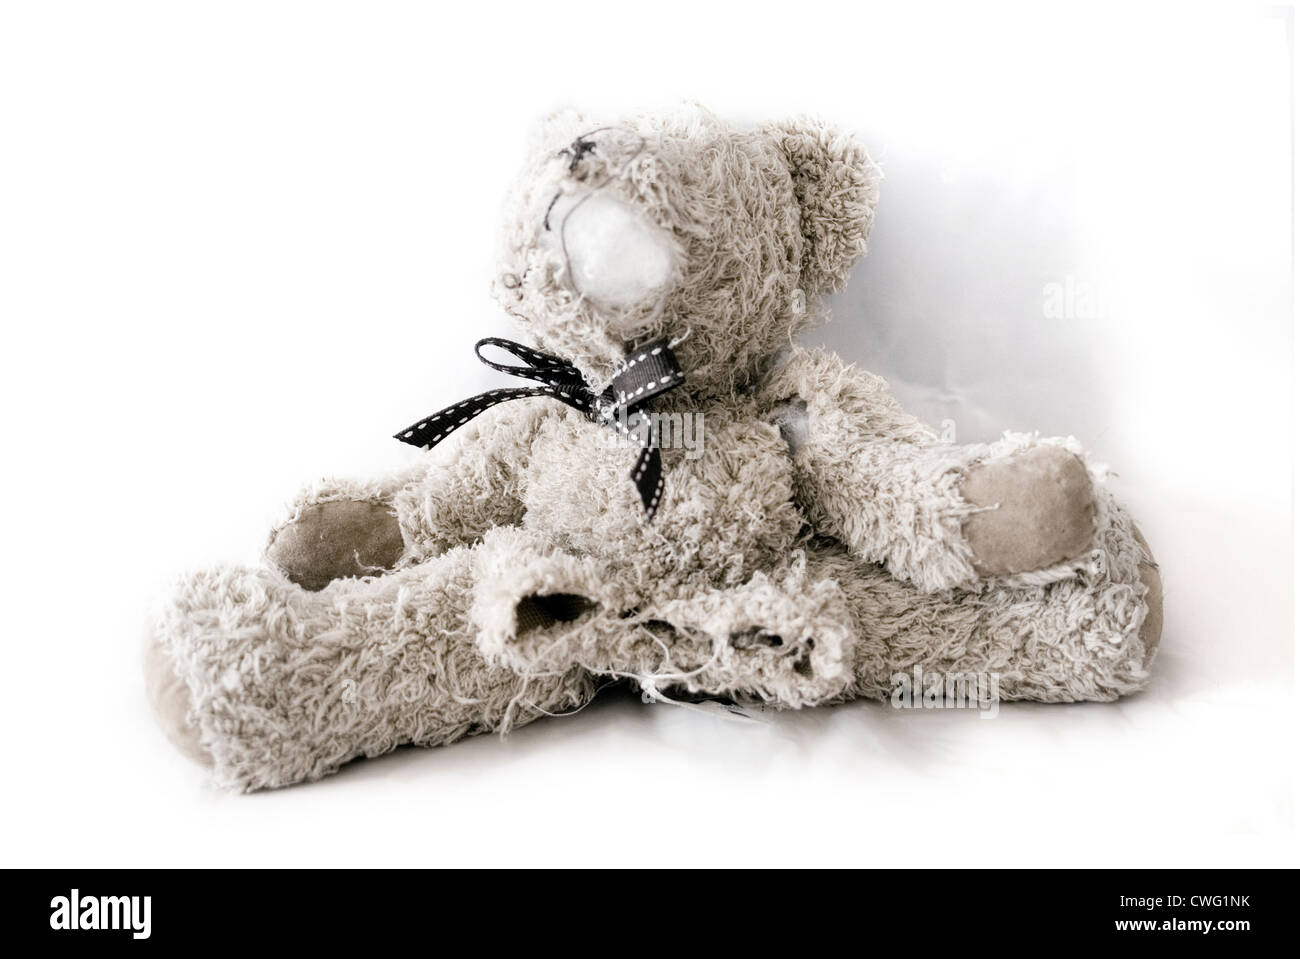 Ripped up teddy bear Stock Photo, Royalty Free Image ...